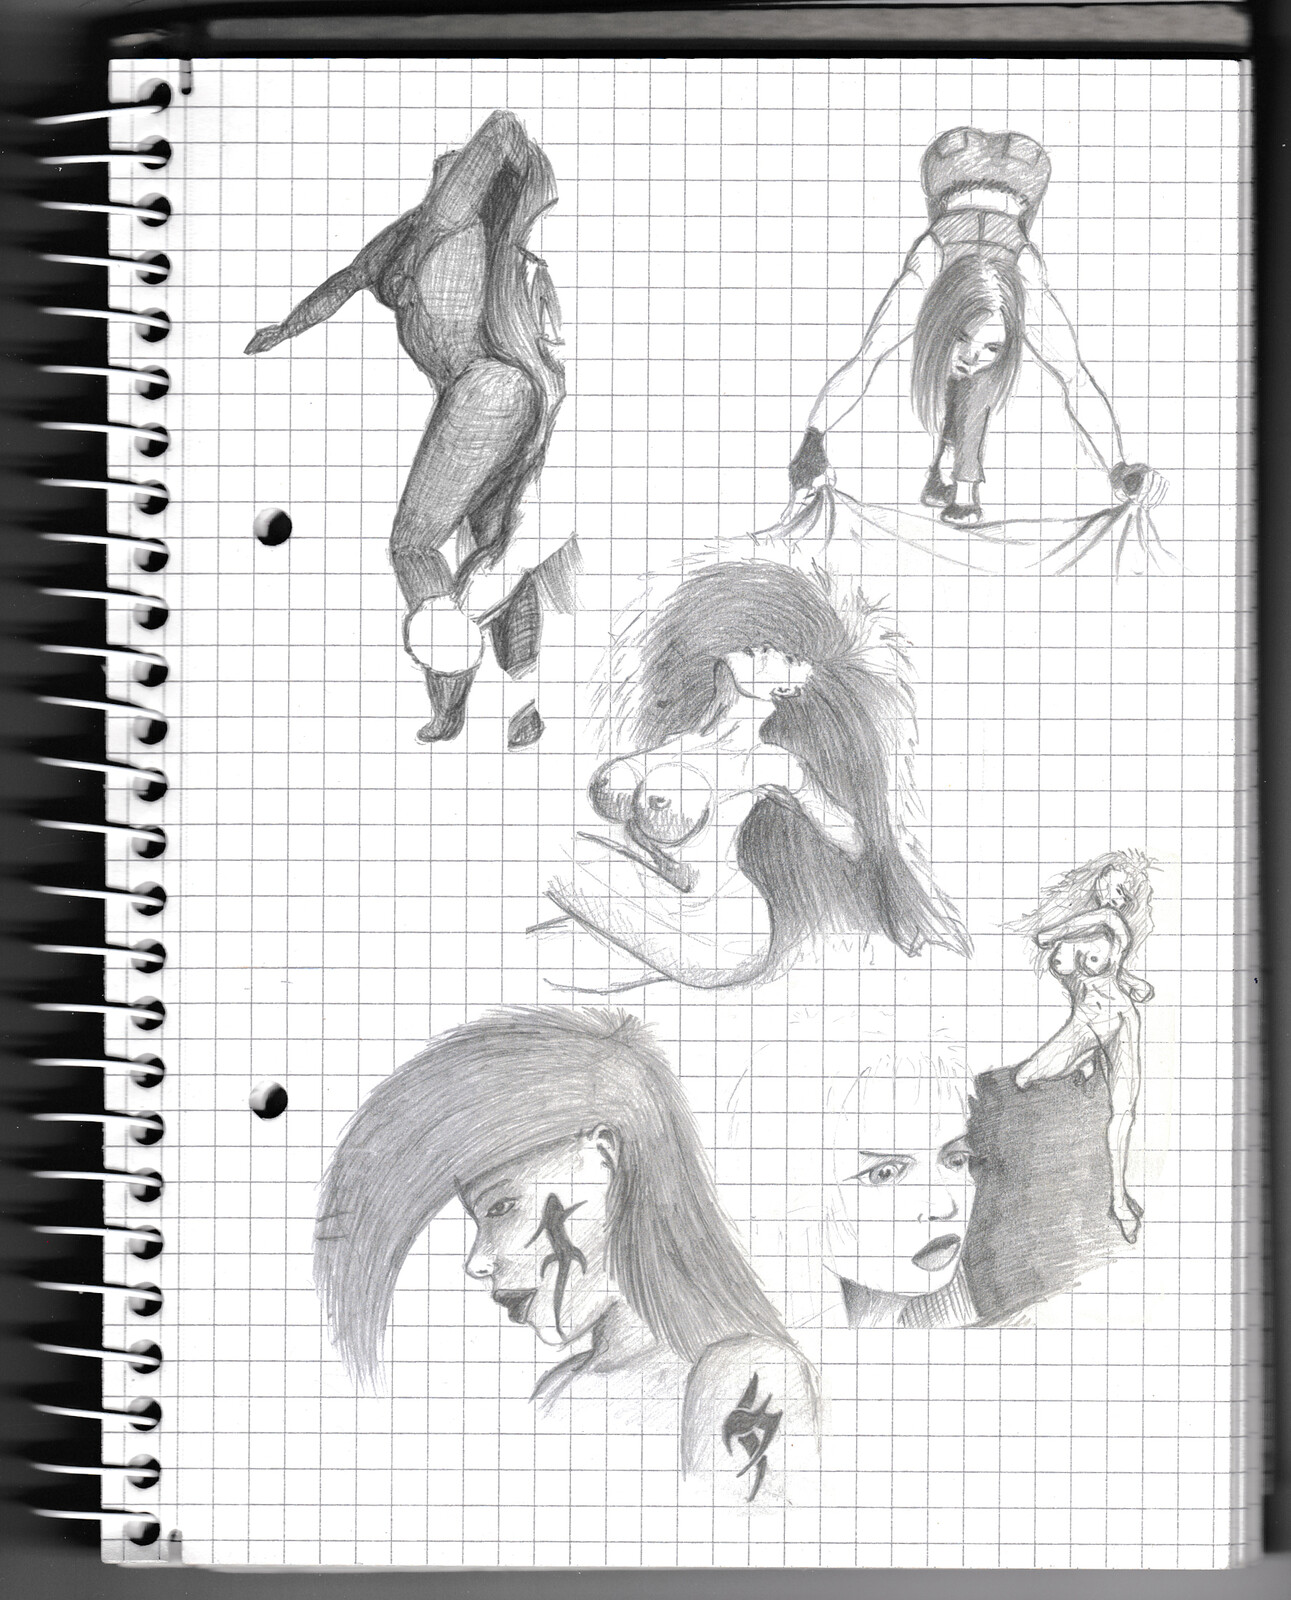 character, sketch, pencil, monster, lady, anatomy,